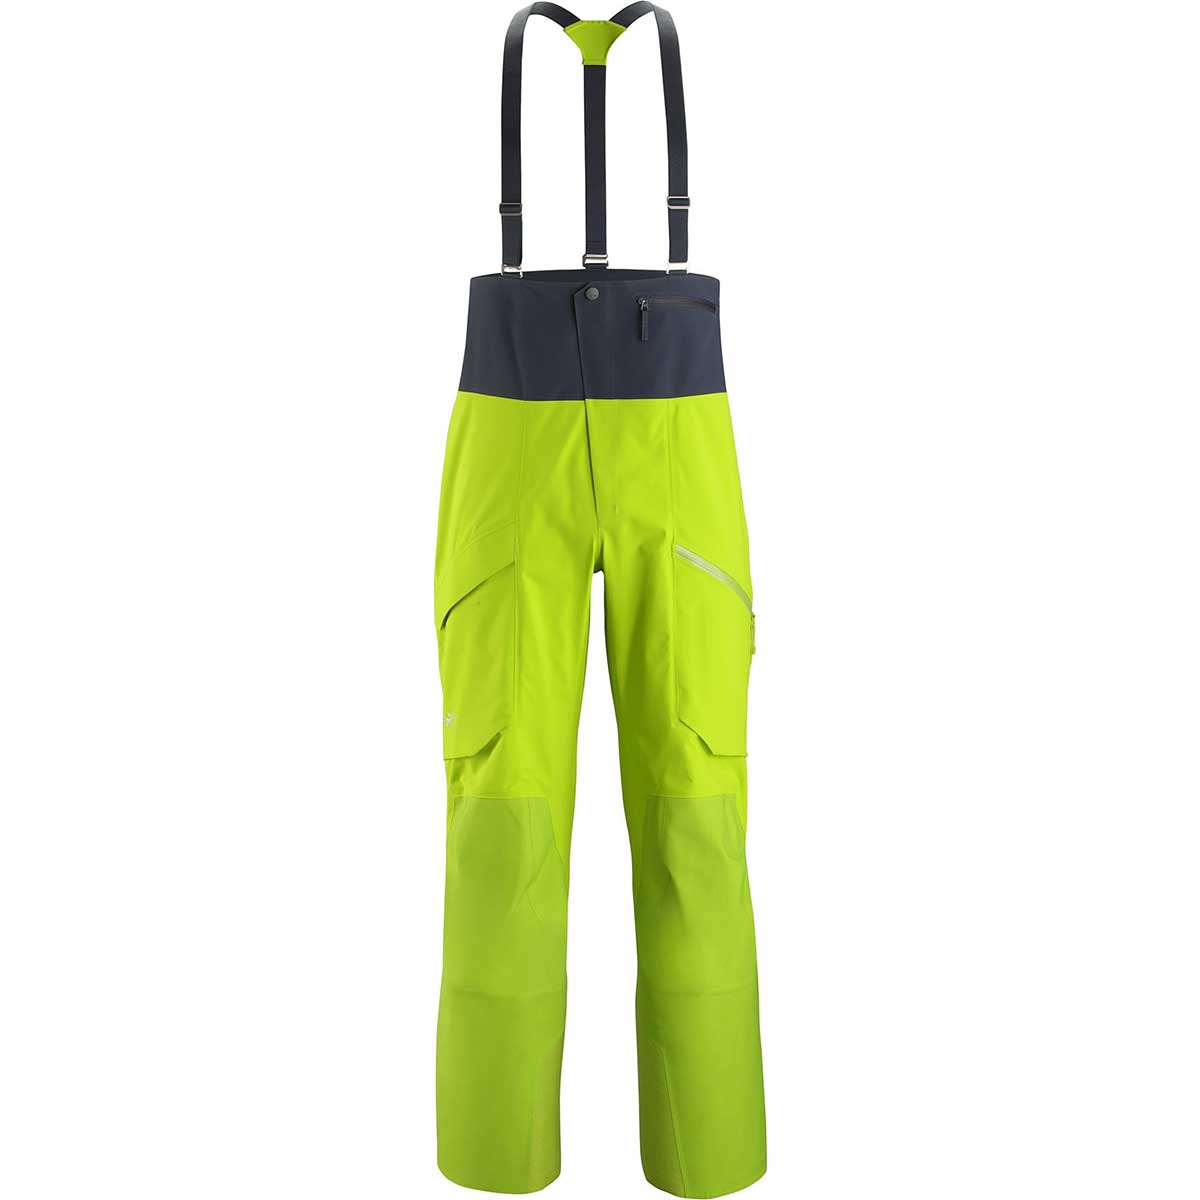 Arcteryx men's Rush LT Pant in Utopia front view